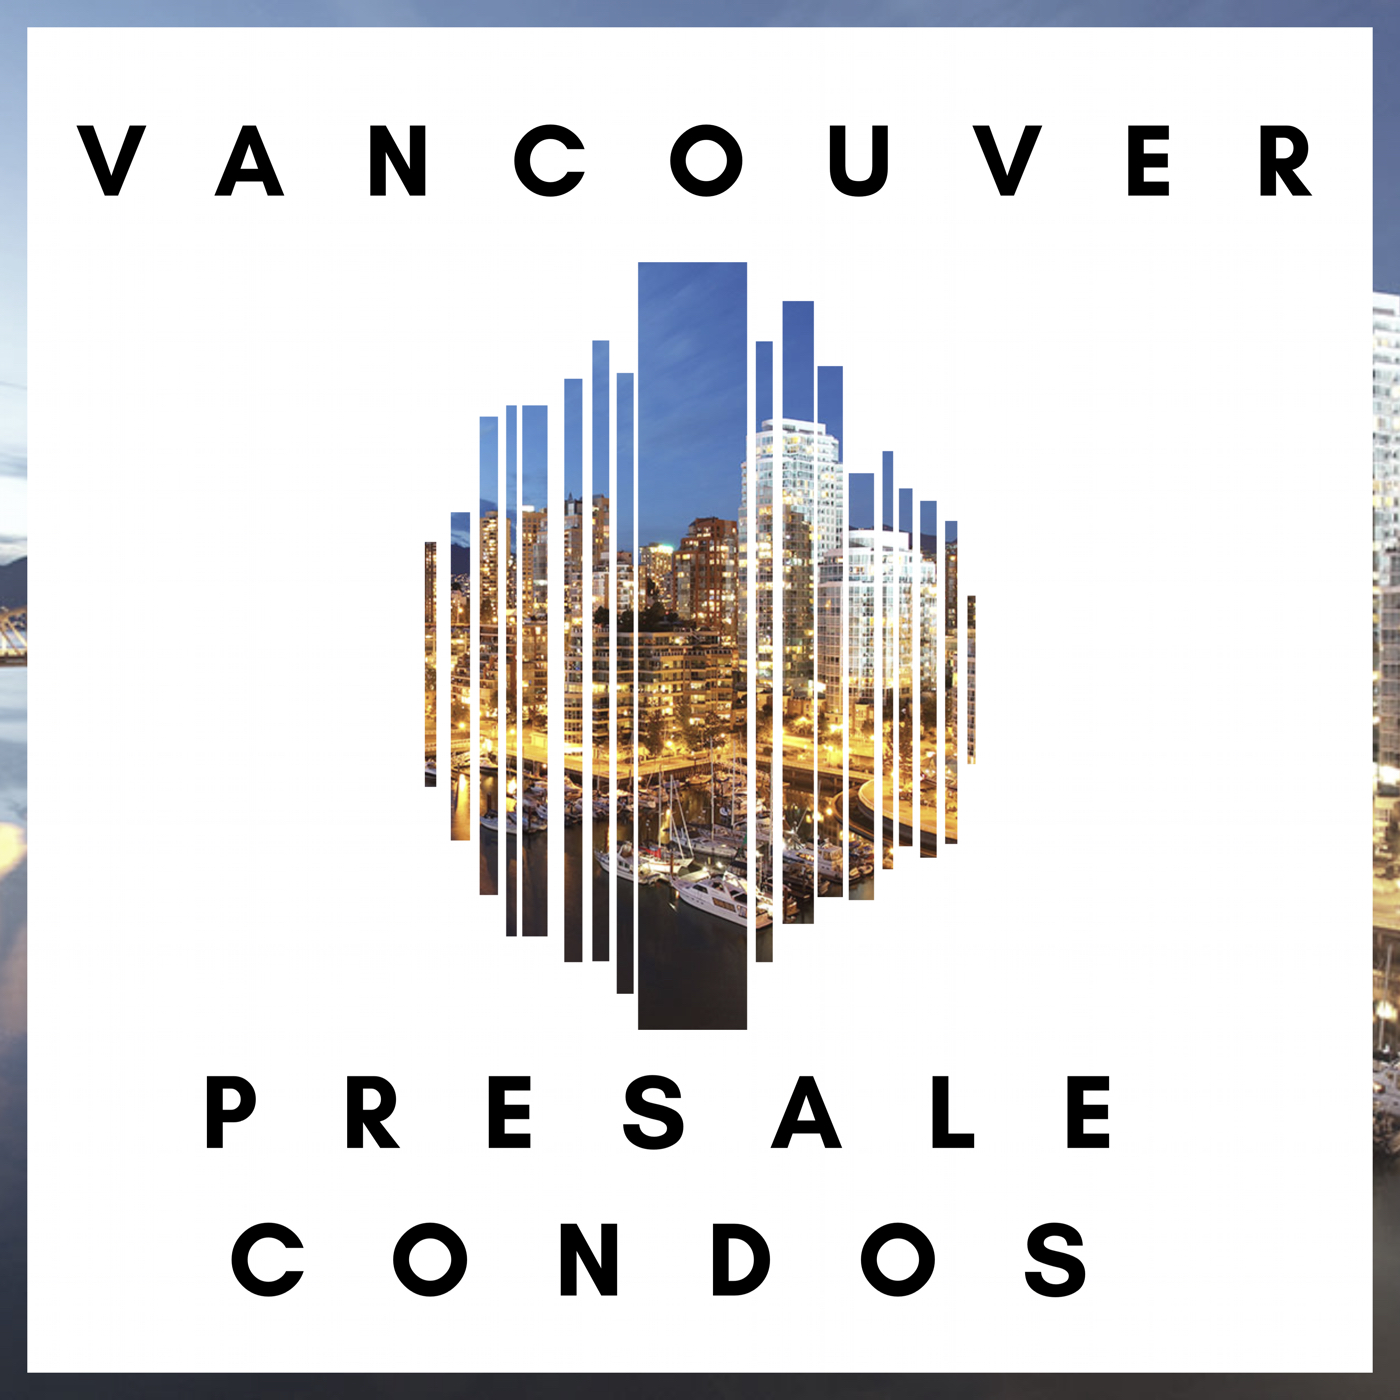 RELEASE: The Vancouver Real Estate Podcast Launches The Vancouver Presale Condos Podcast!